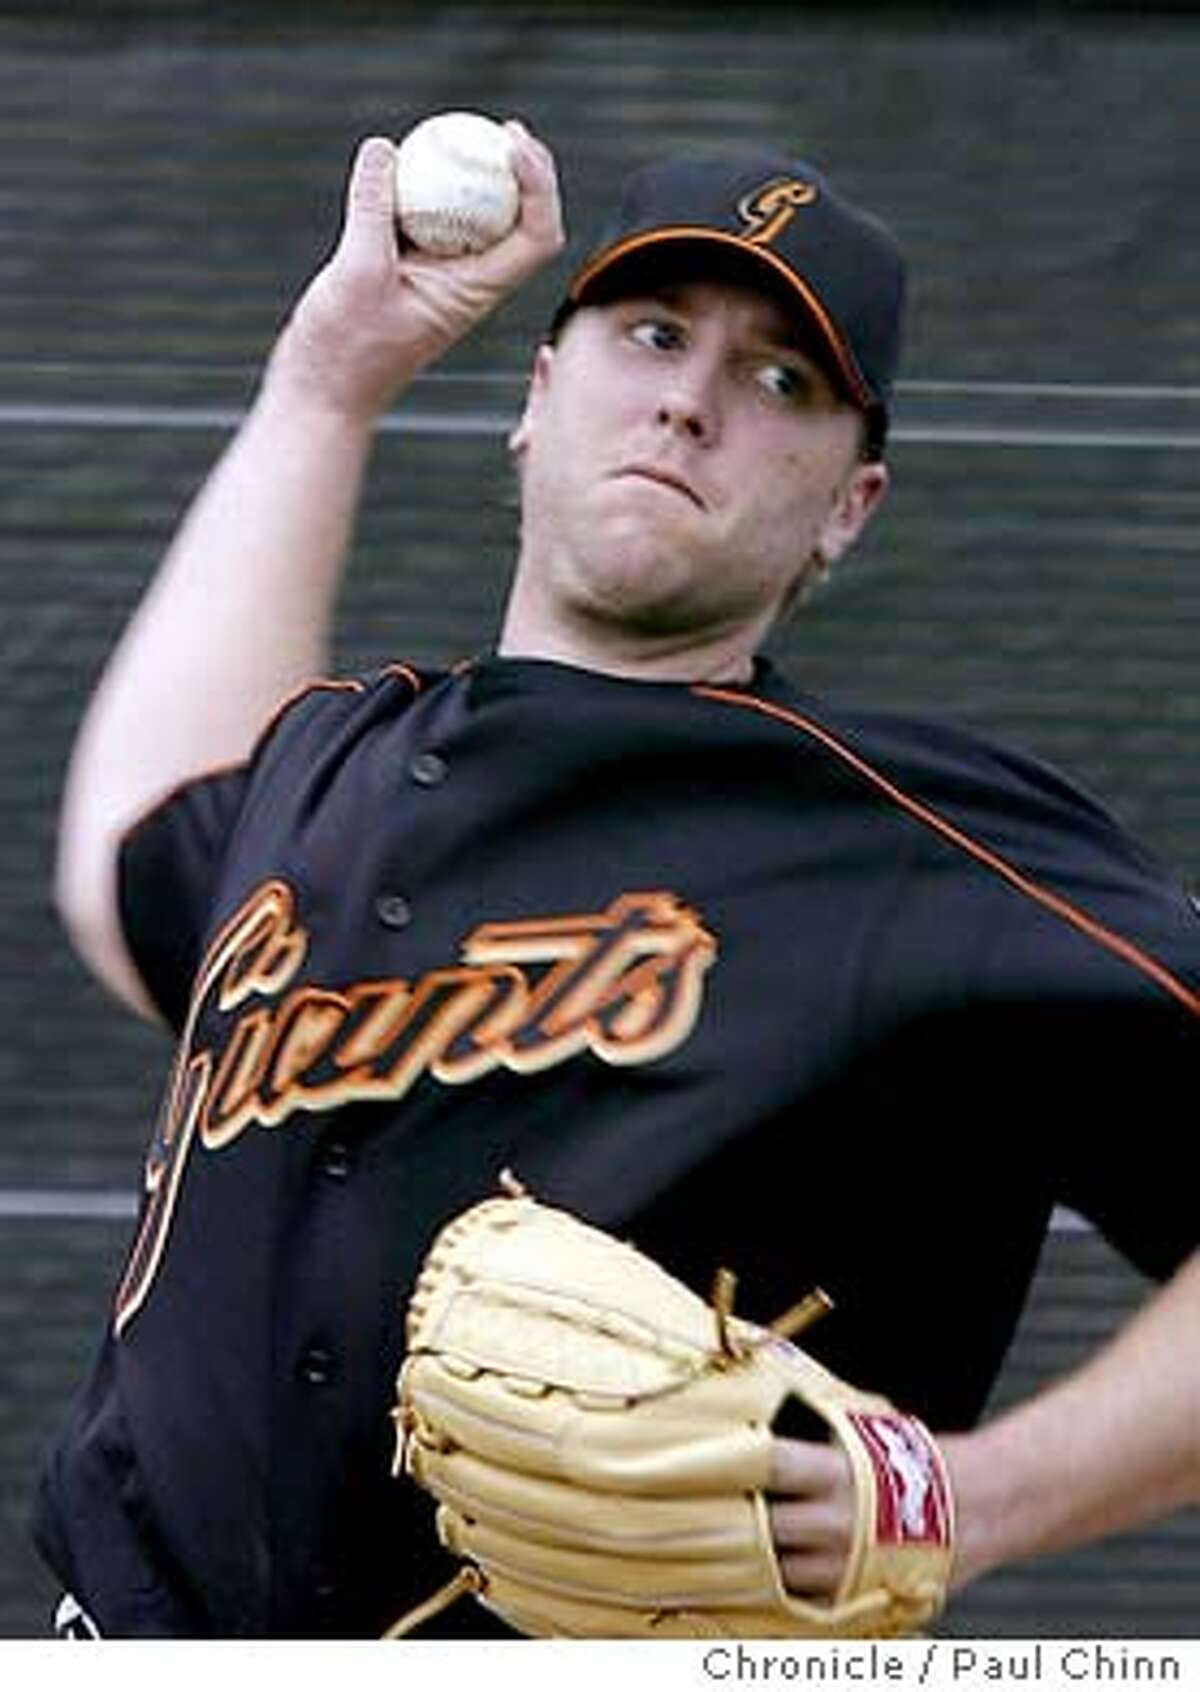 giants21_222_pc.JPG New pitcher Brett Tomko pitched for about eight minutes at the workout. The San Francisco Giants held its first 2004 Spring Training workout on 2/20/04 in Scottsdale, AZ. PAUL CHINN / The Chronicle